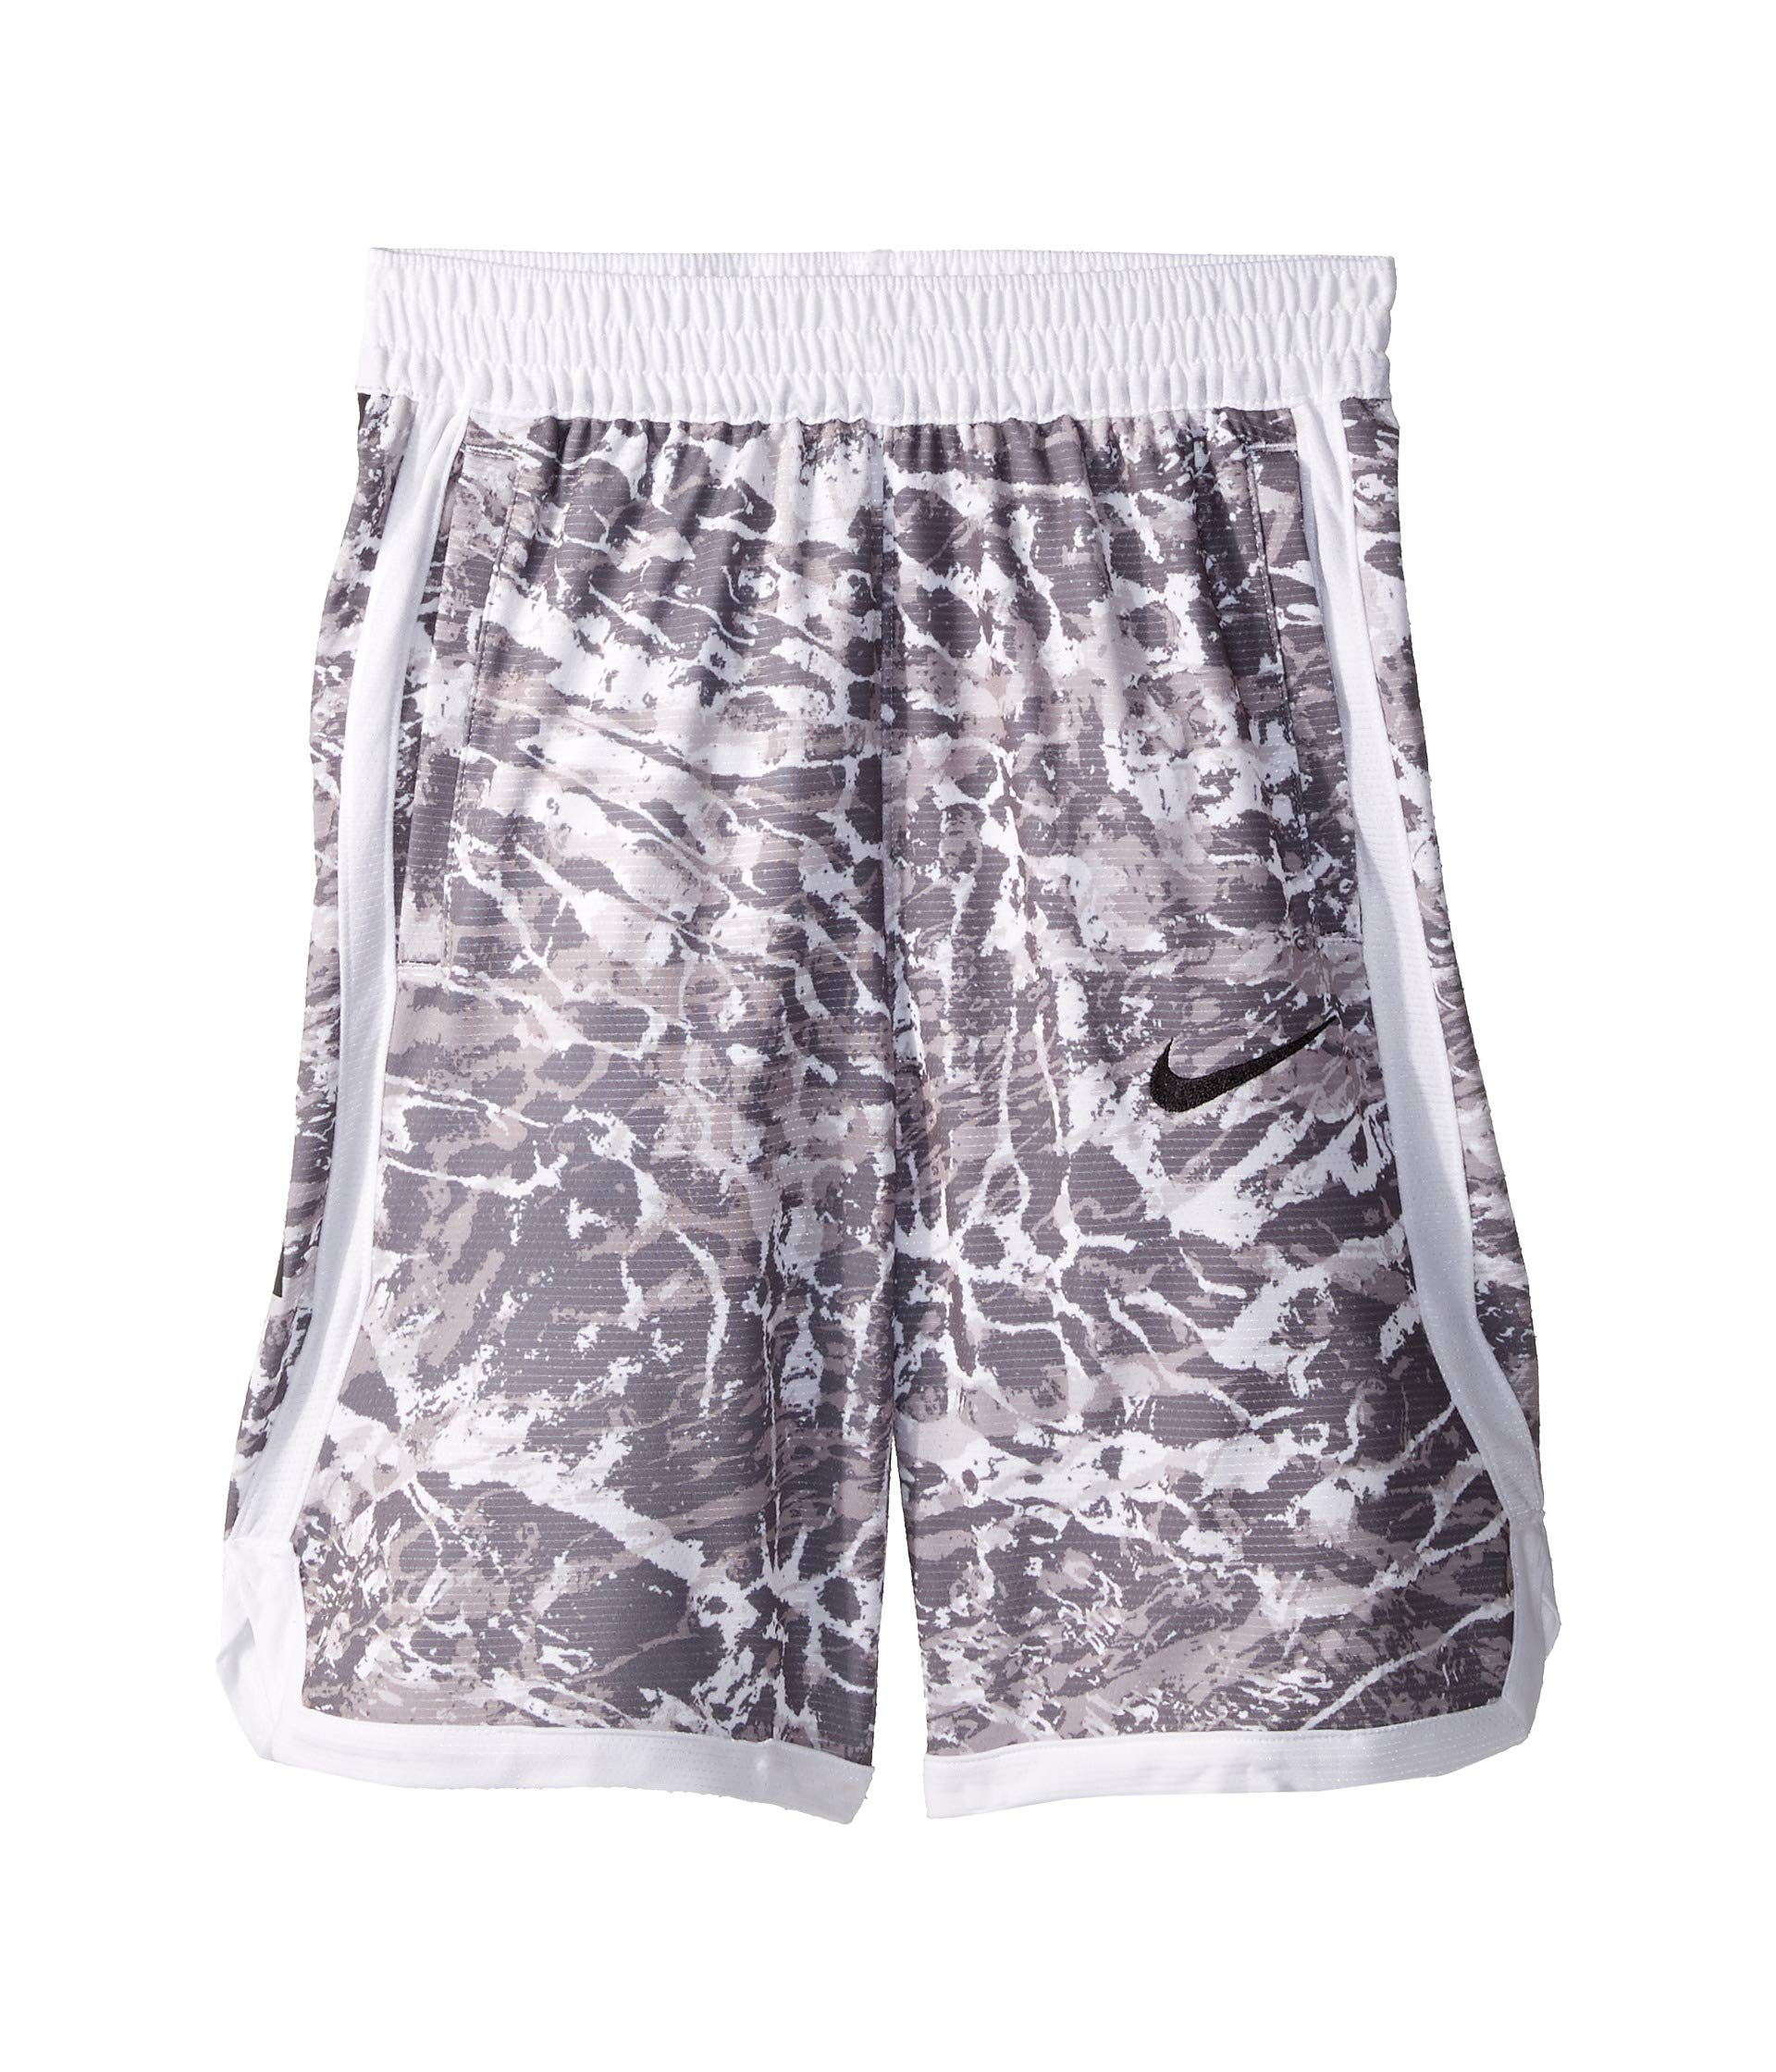 Nike Boy's Dri-FIT Elite Printed Basketball Shorts (White/White, Small) by Nike